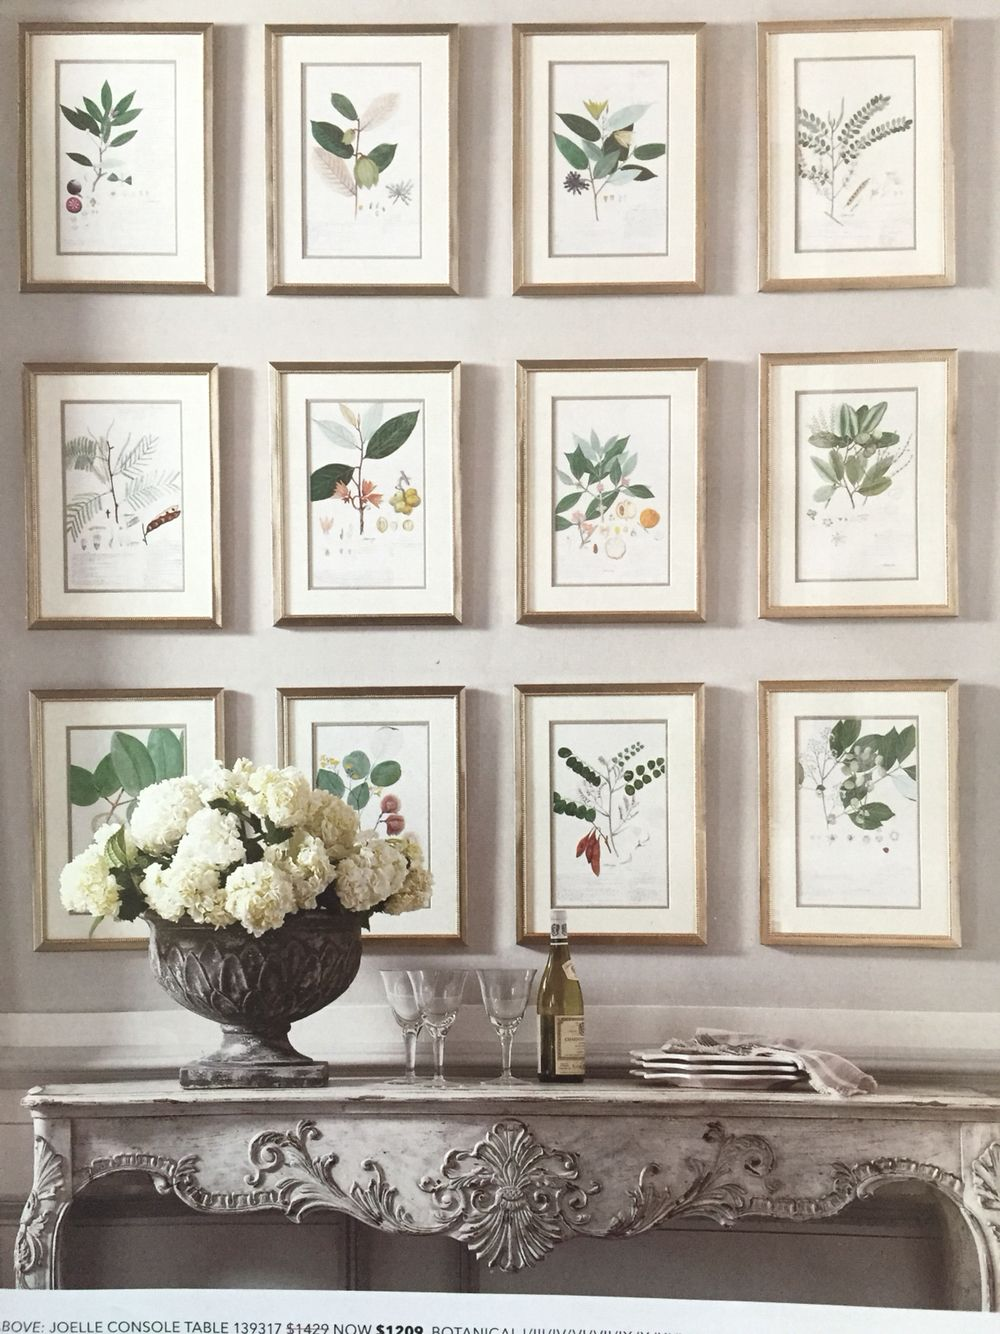 Gallery Wall Of Matted Botanical Prints In Gold Frames